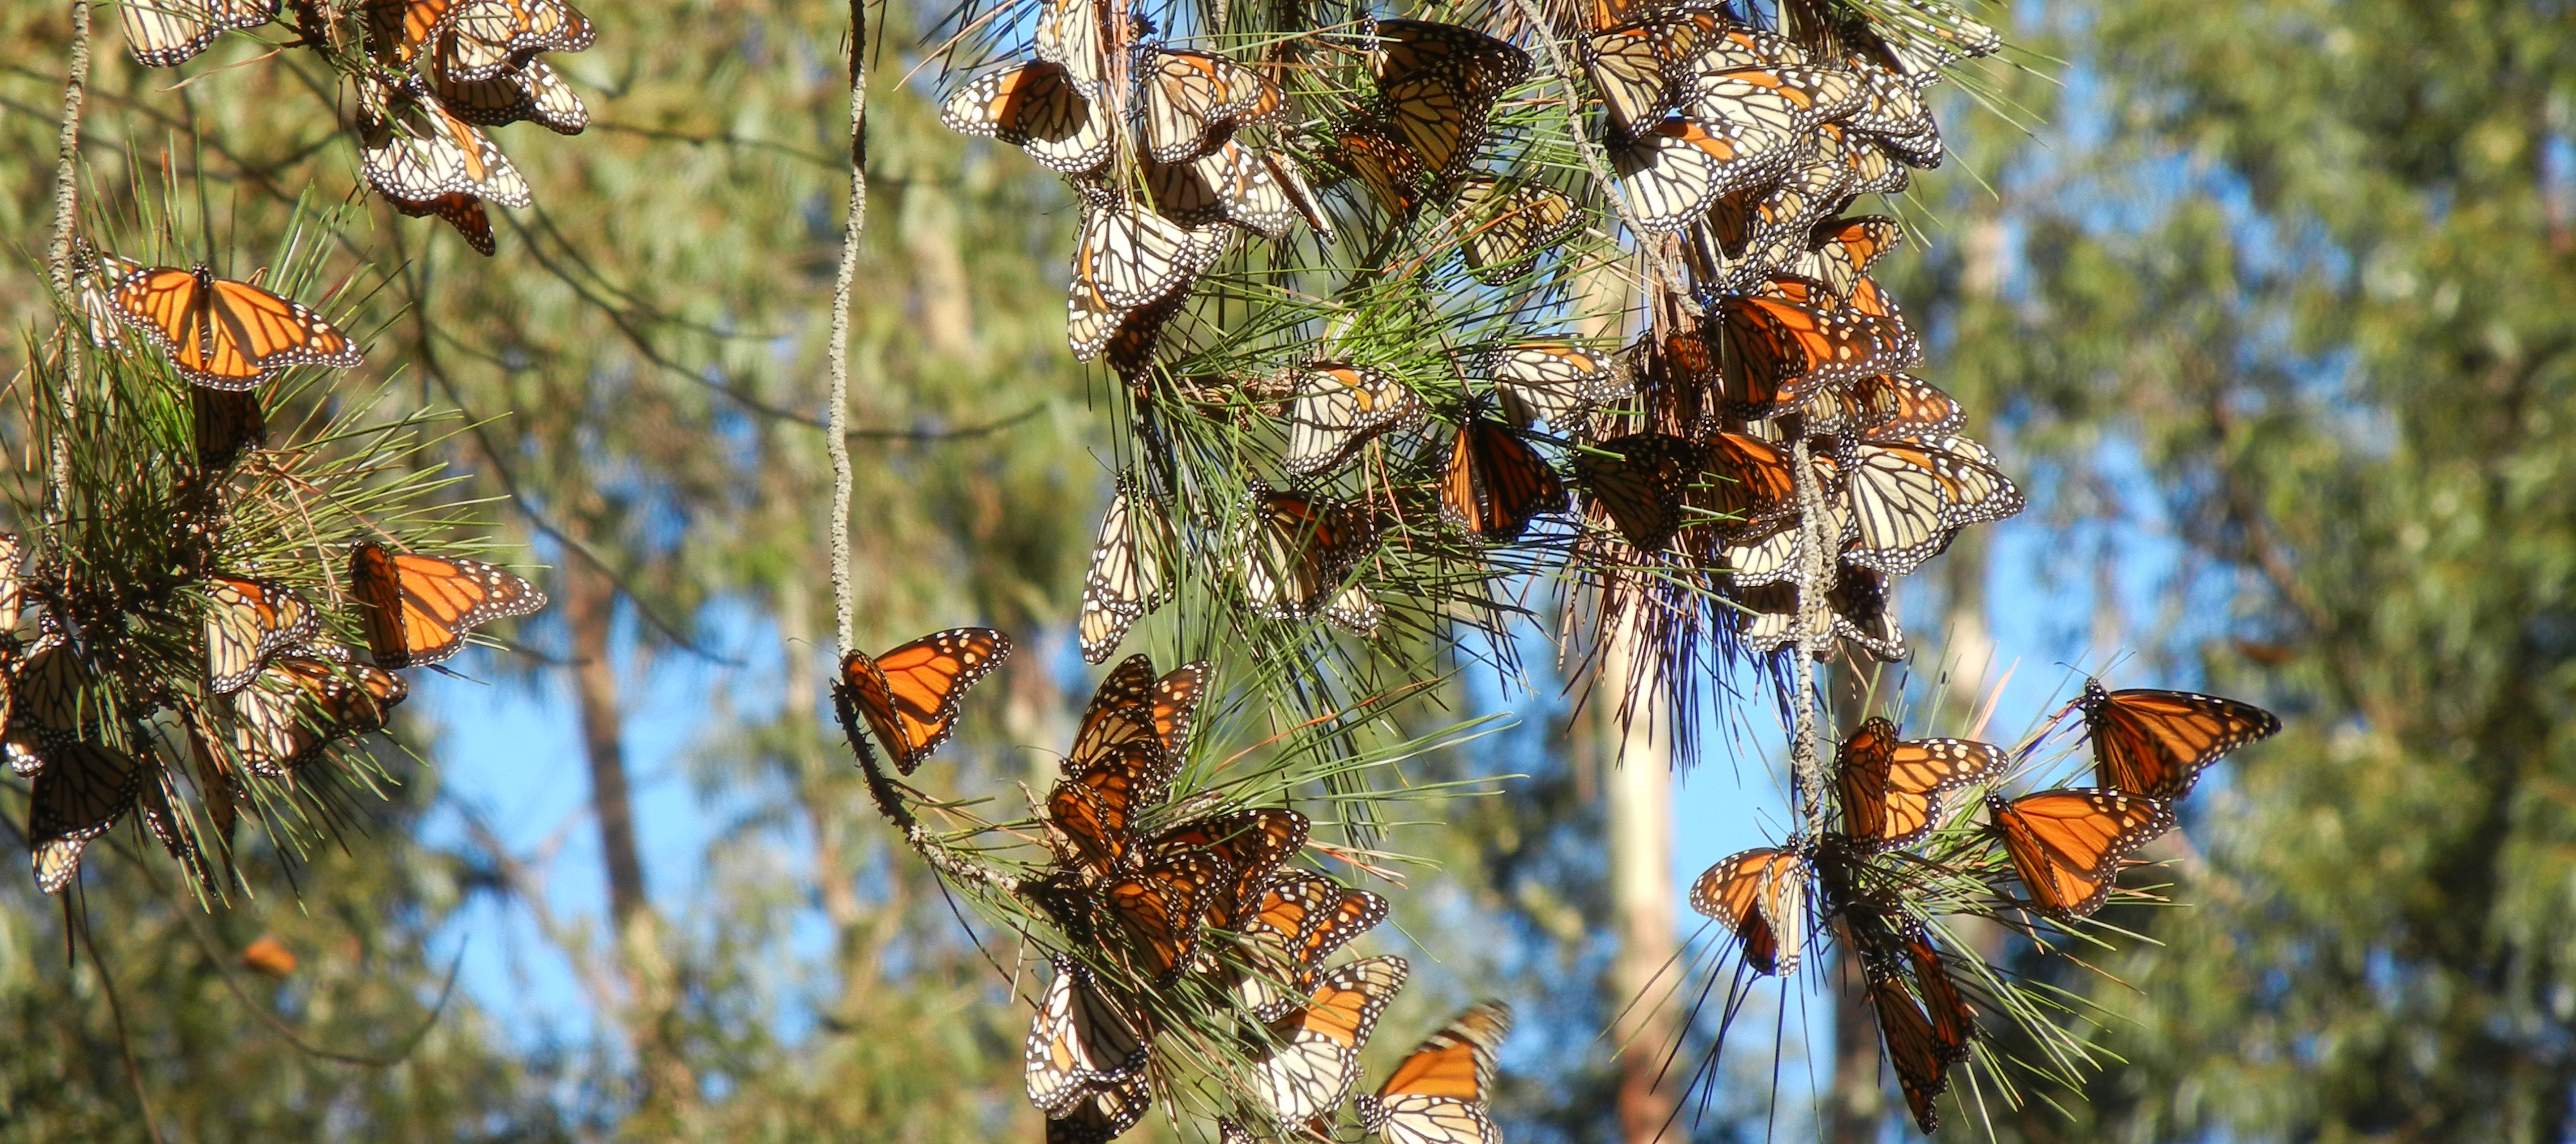 Monarchs cluster on a pine branch. Those with their wings closed look more drab, similar to dead leaves. Those with their wings open are bright orange.